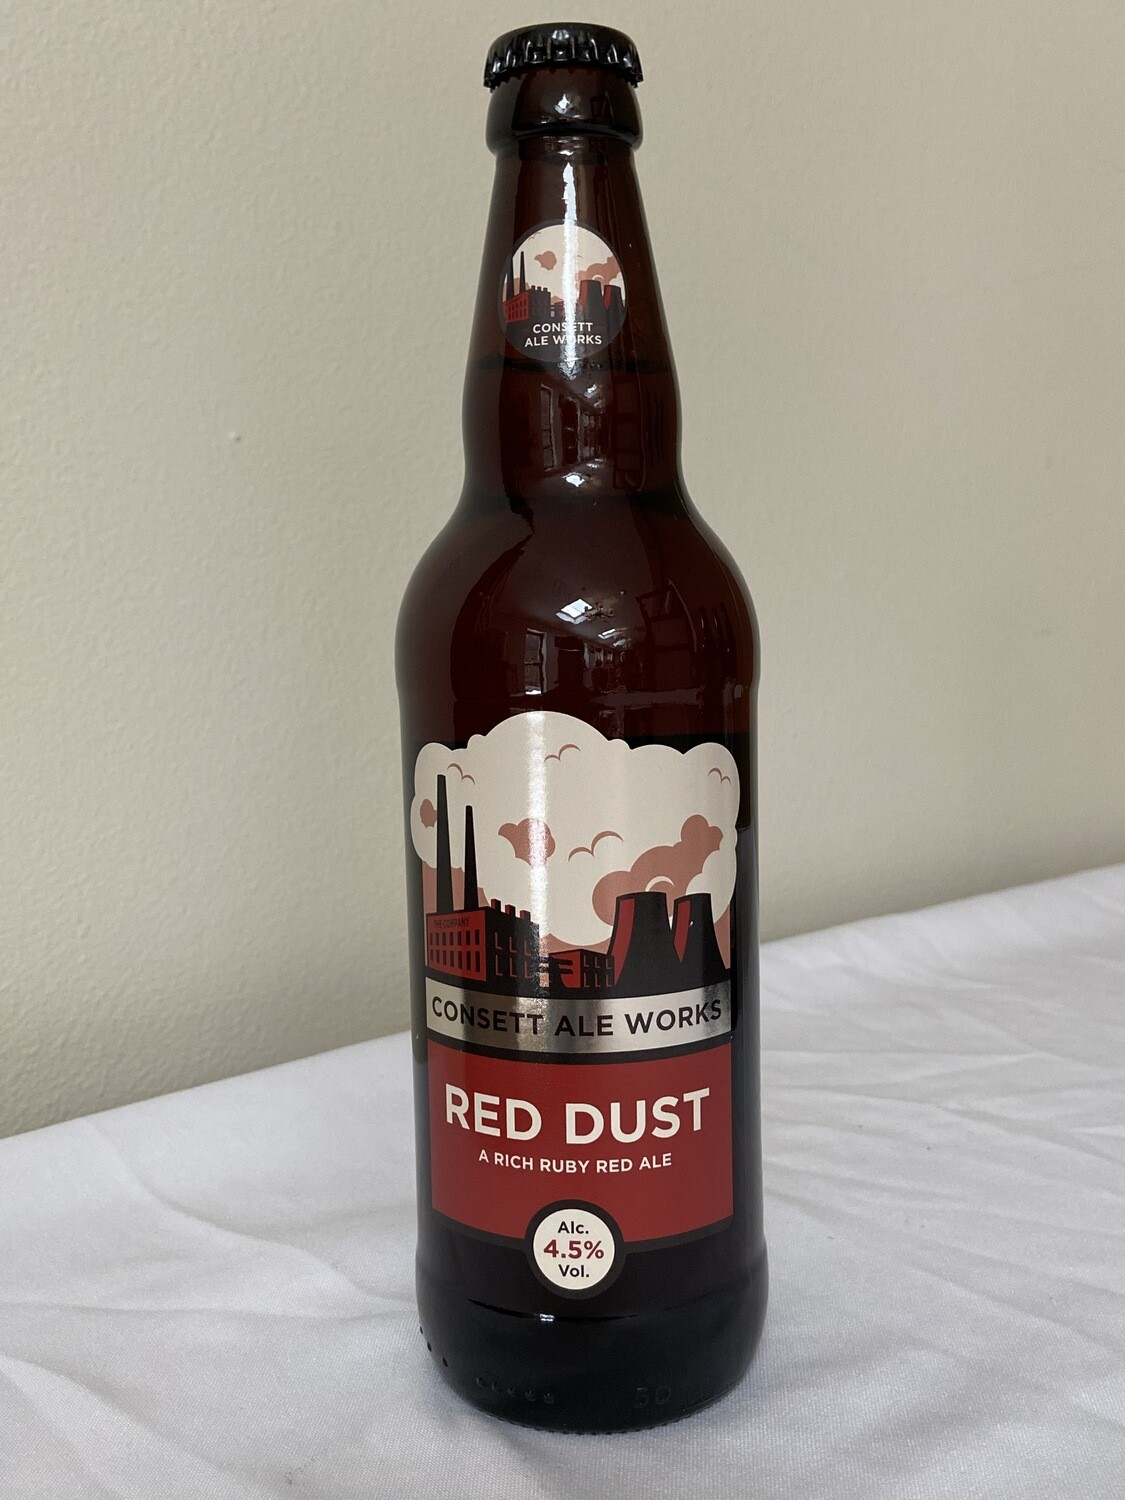 Consett Ale Works Red Dust (A rich ruby red ale) 4.5% vol